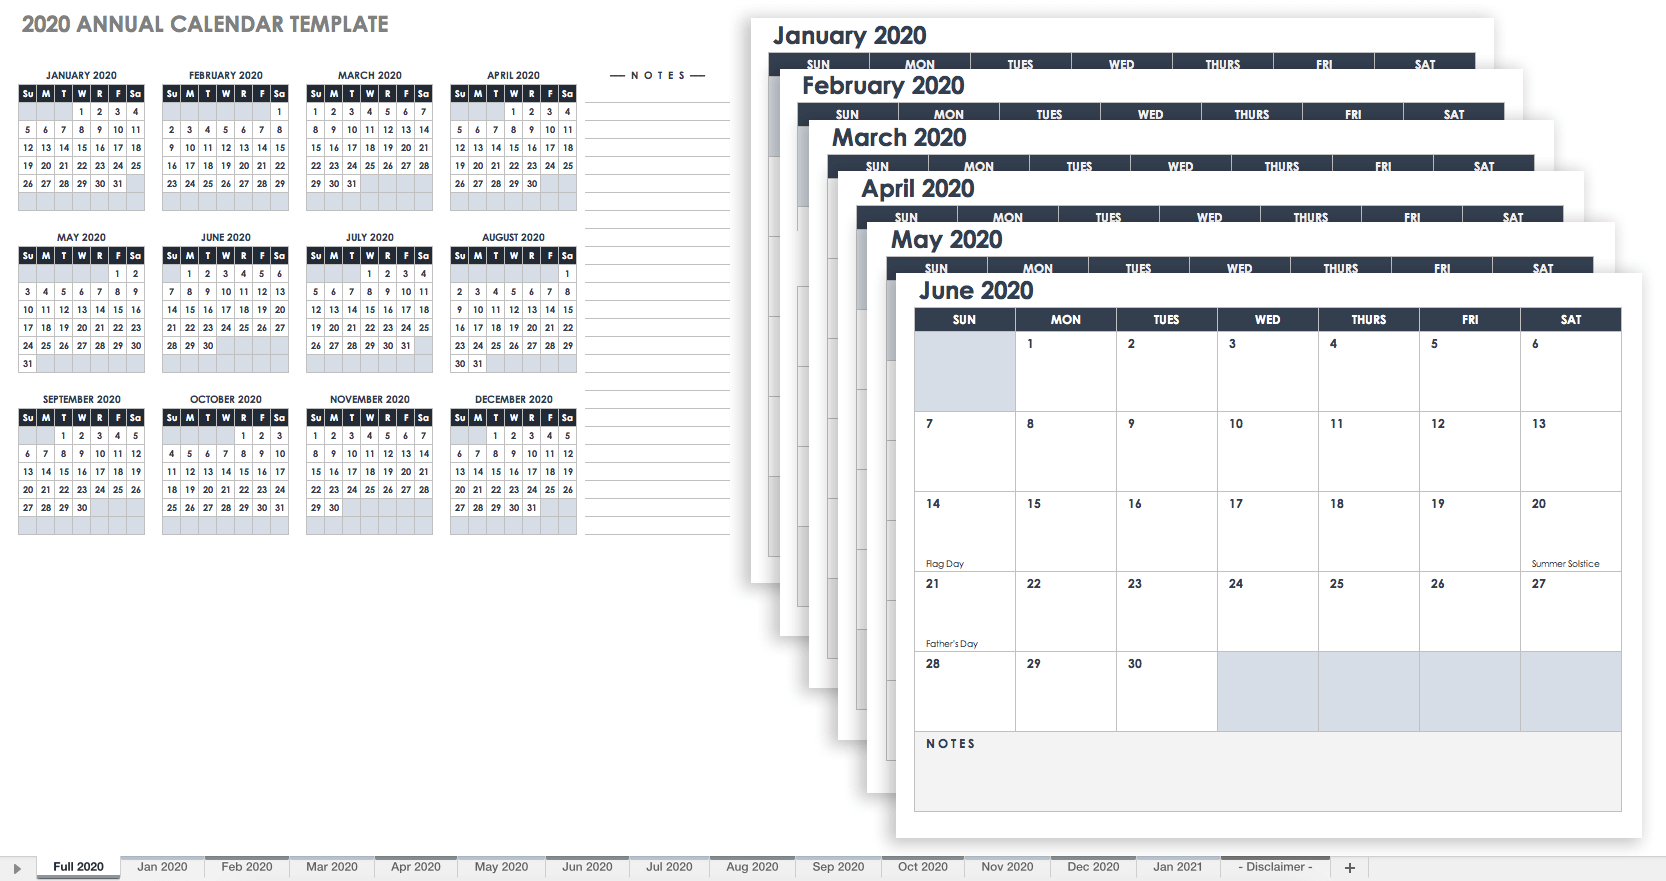 Free, Printable Excel Calendar Templates For 2019 & On | Smartsheet throughout 3 Month Editable Calendar Template Printable